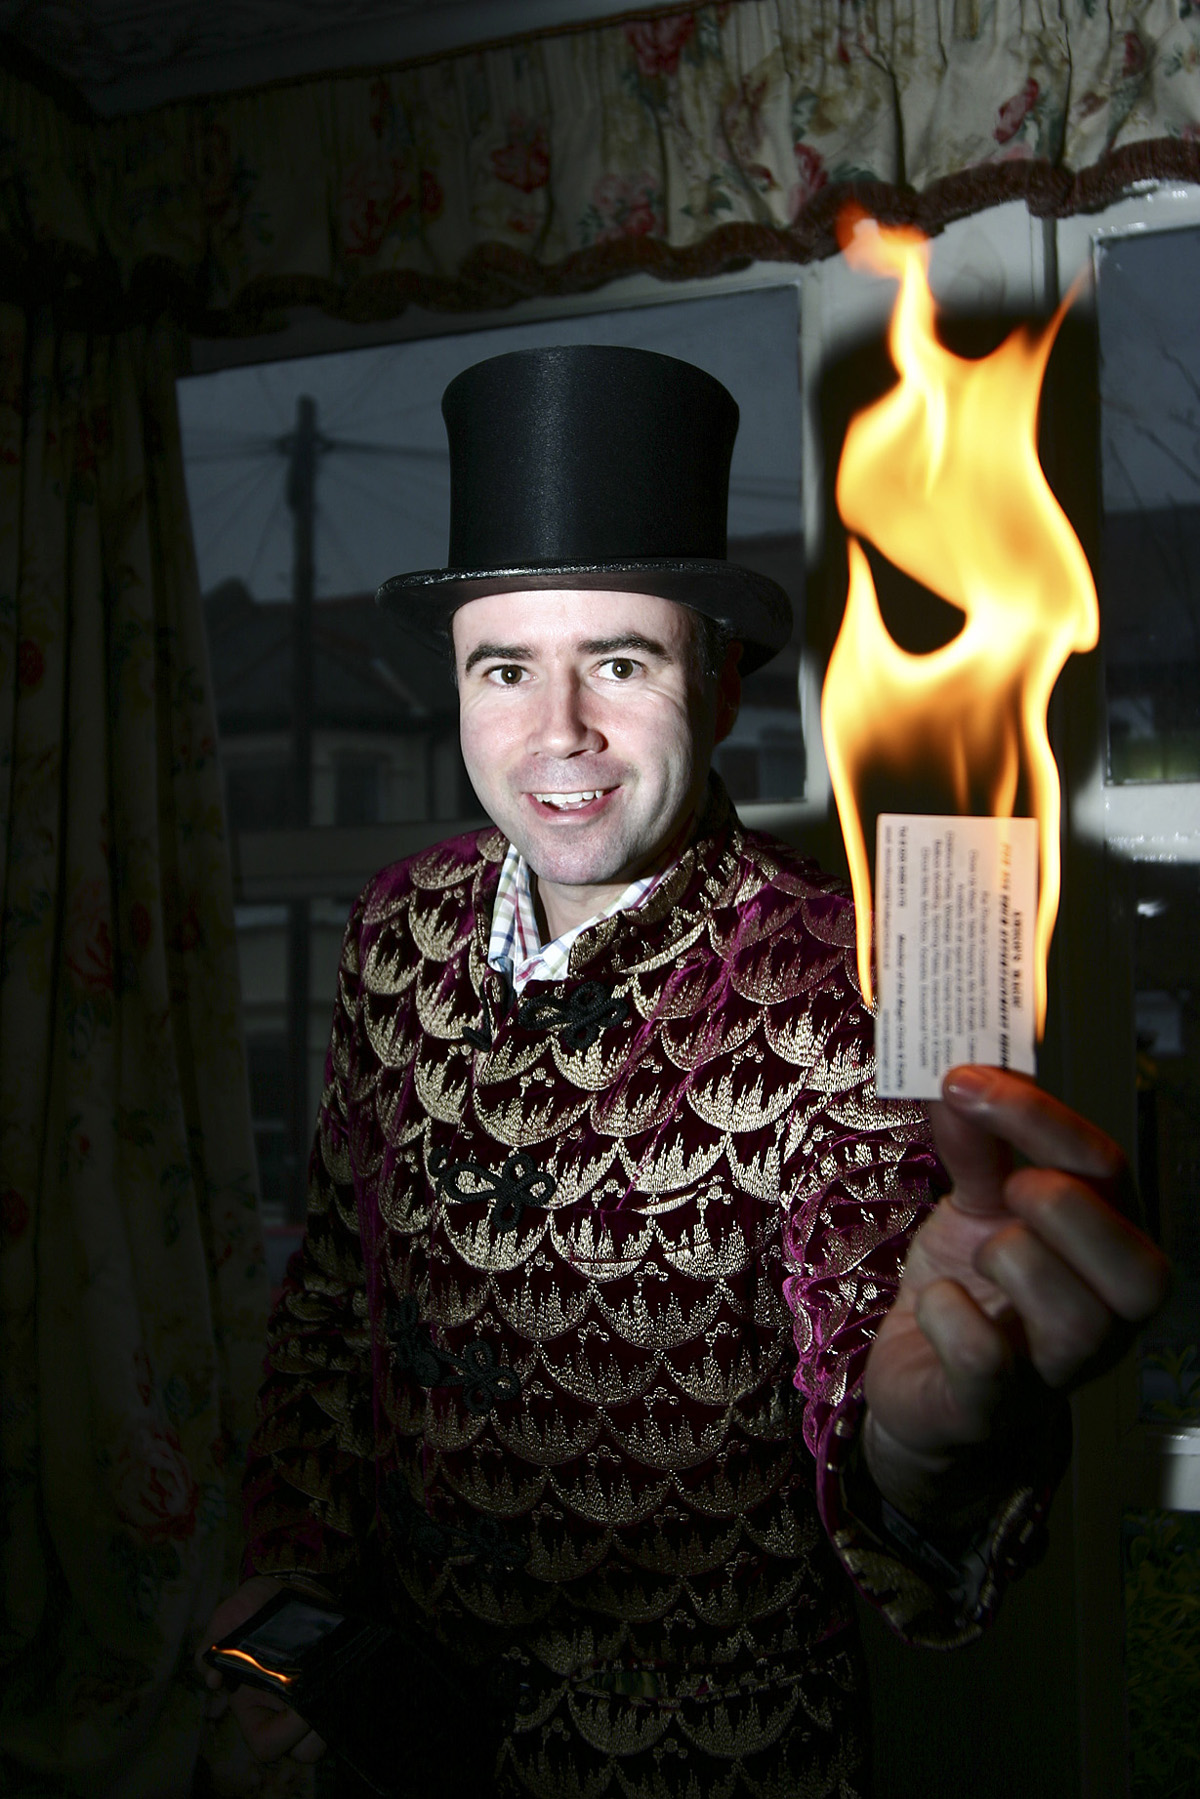 Family Easter Bank Holiday Comedy Magic Show 3.30 - 4.30pm